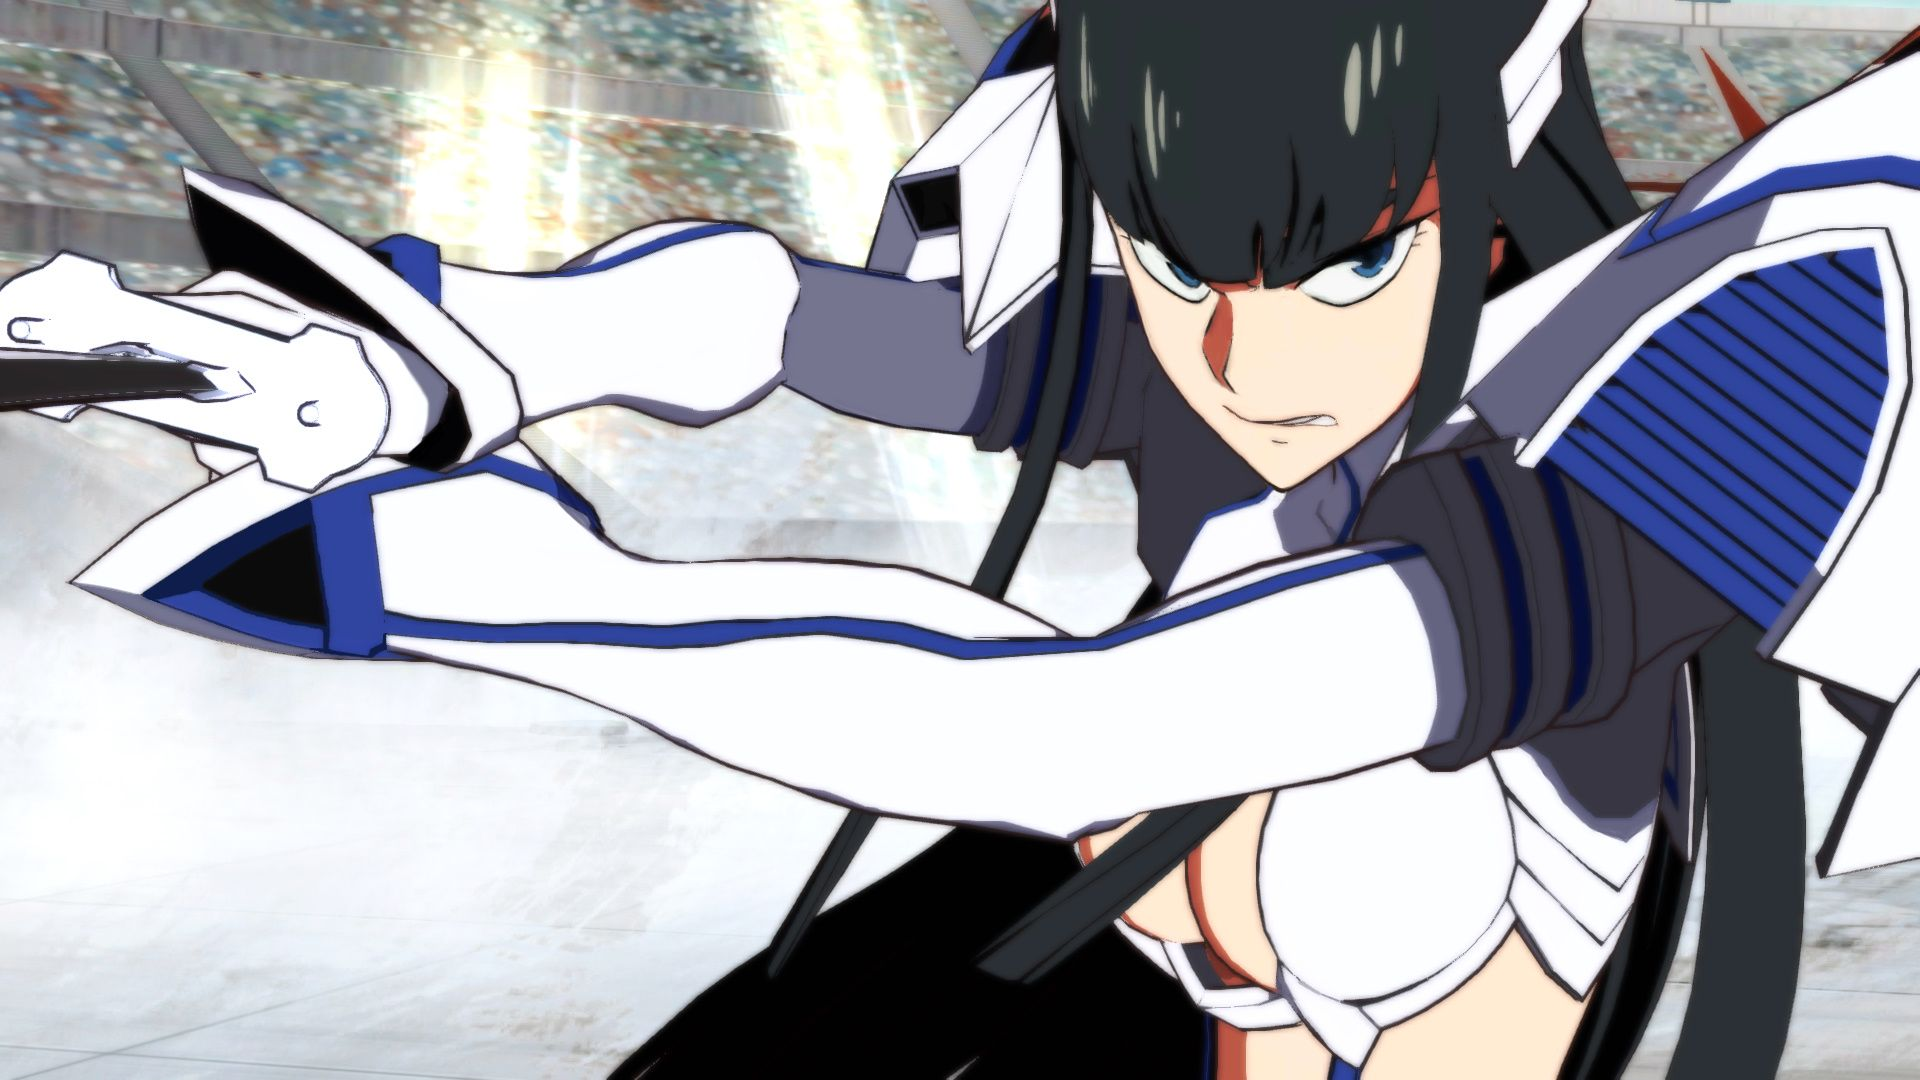 https://i2.wp.com/proximonivel.pt/wp-content/uploads/2018/06/kill-la-kill-the-game-img-02-pn.jpg